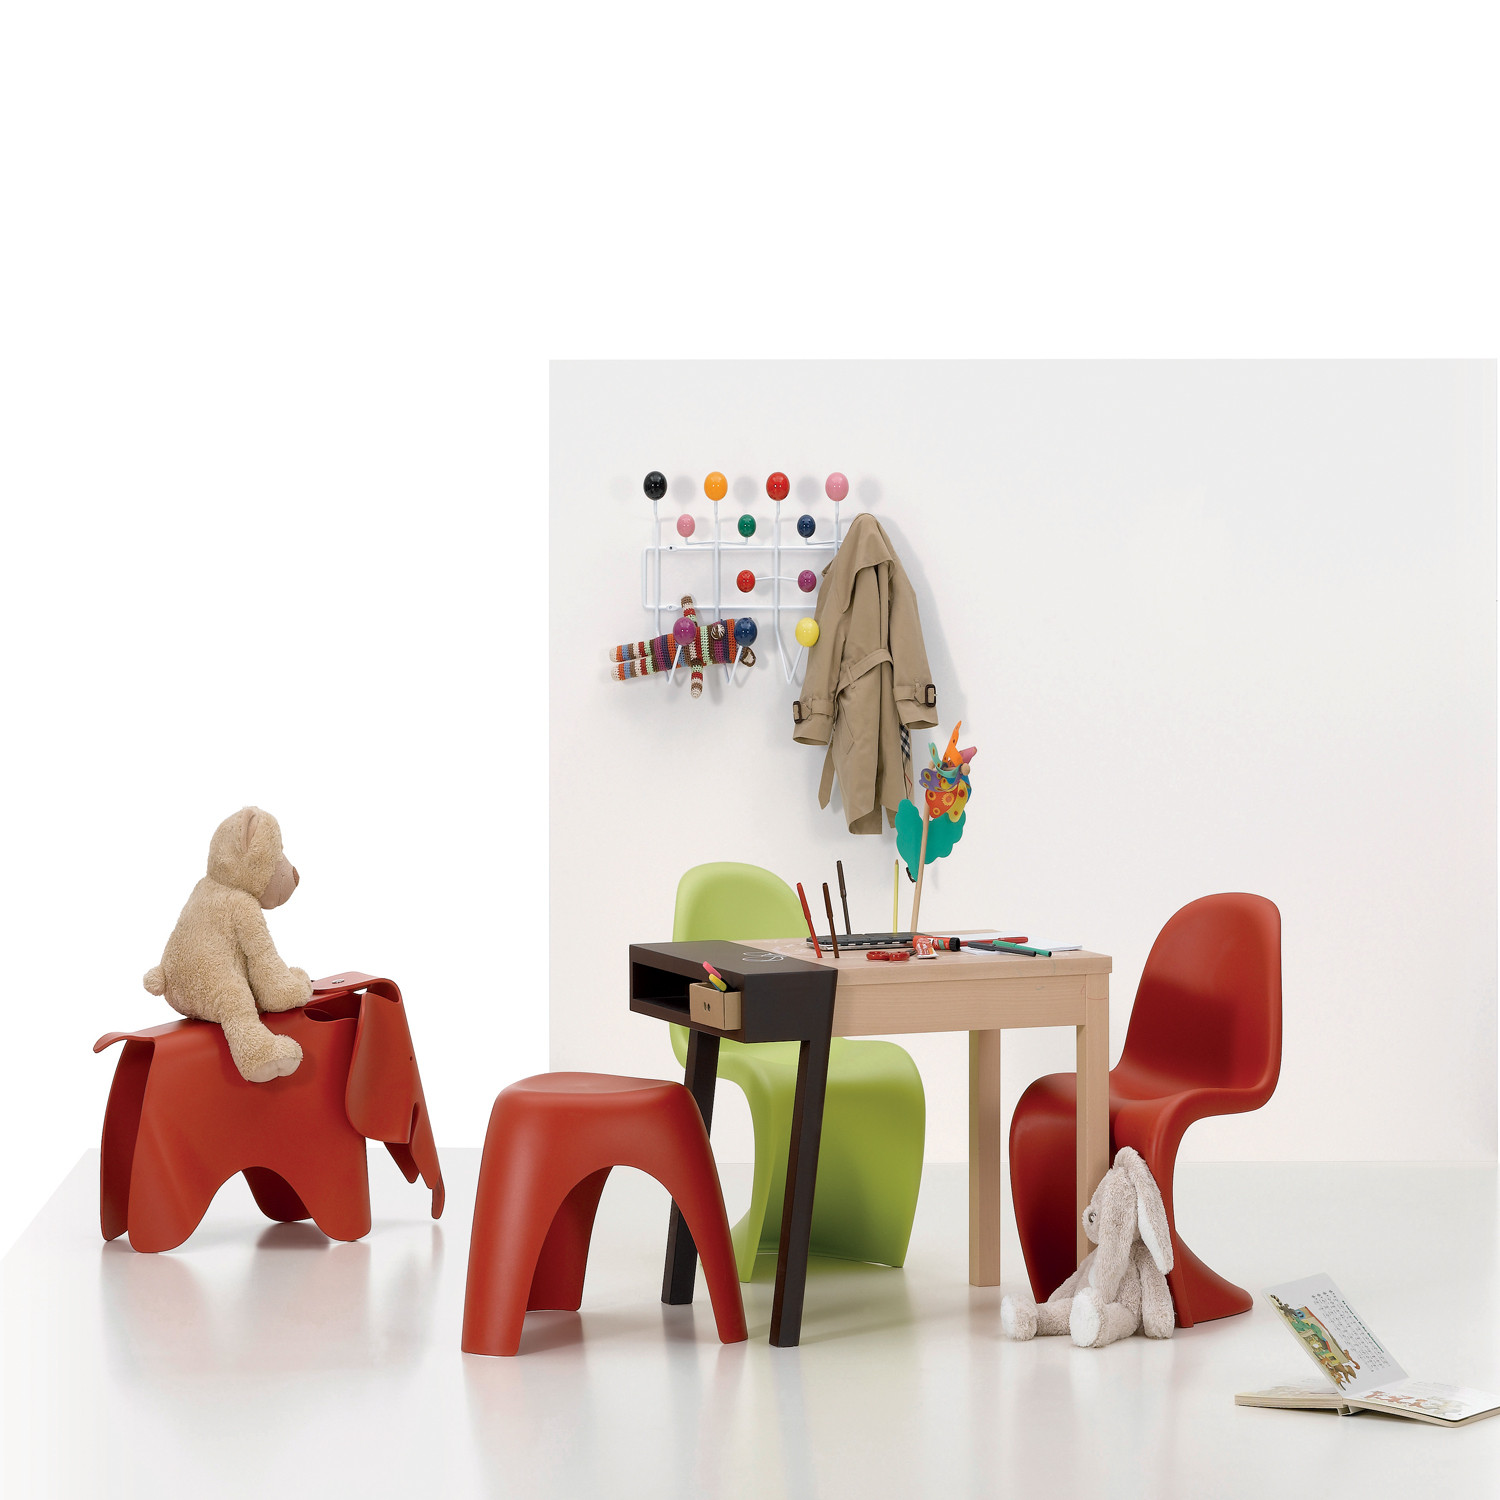 panton junior chairs childrens chairs in plastic apres furnture. Black Bedroom Furniture Sets. Home Design Ideas